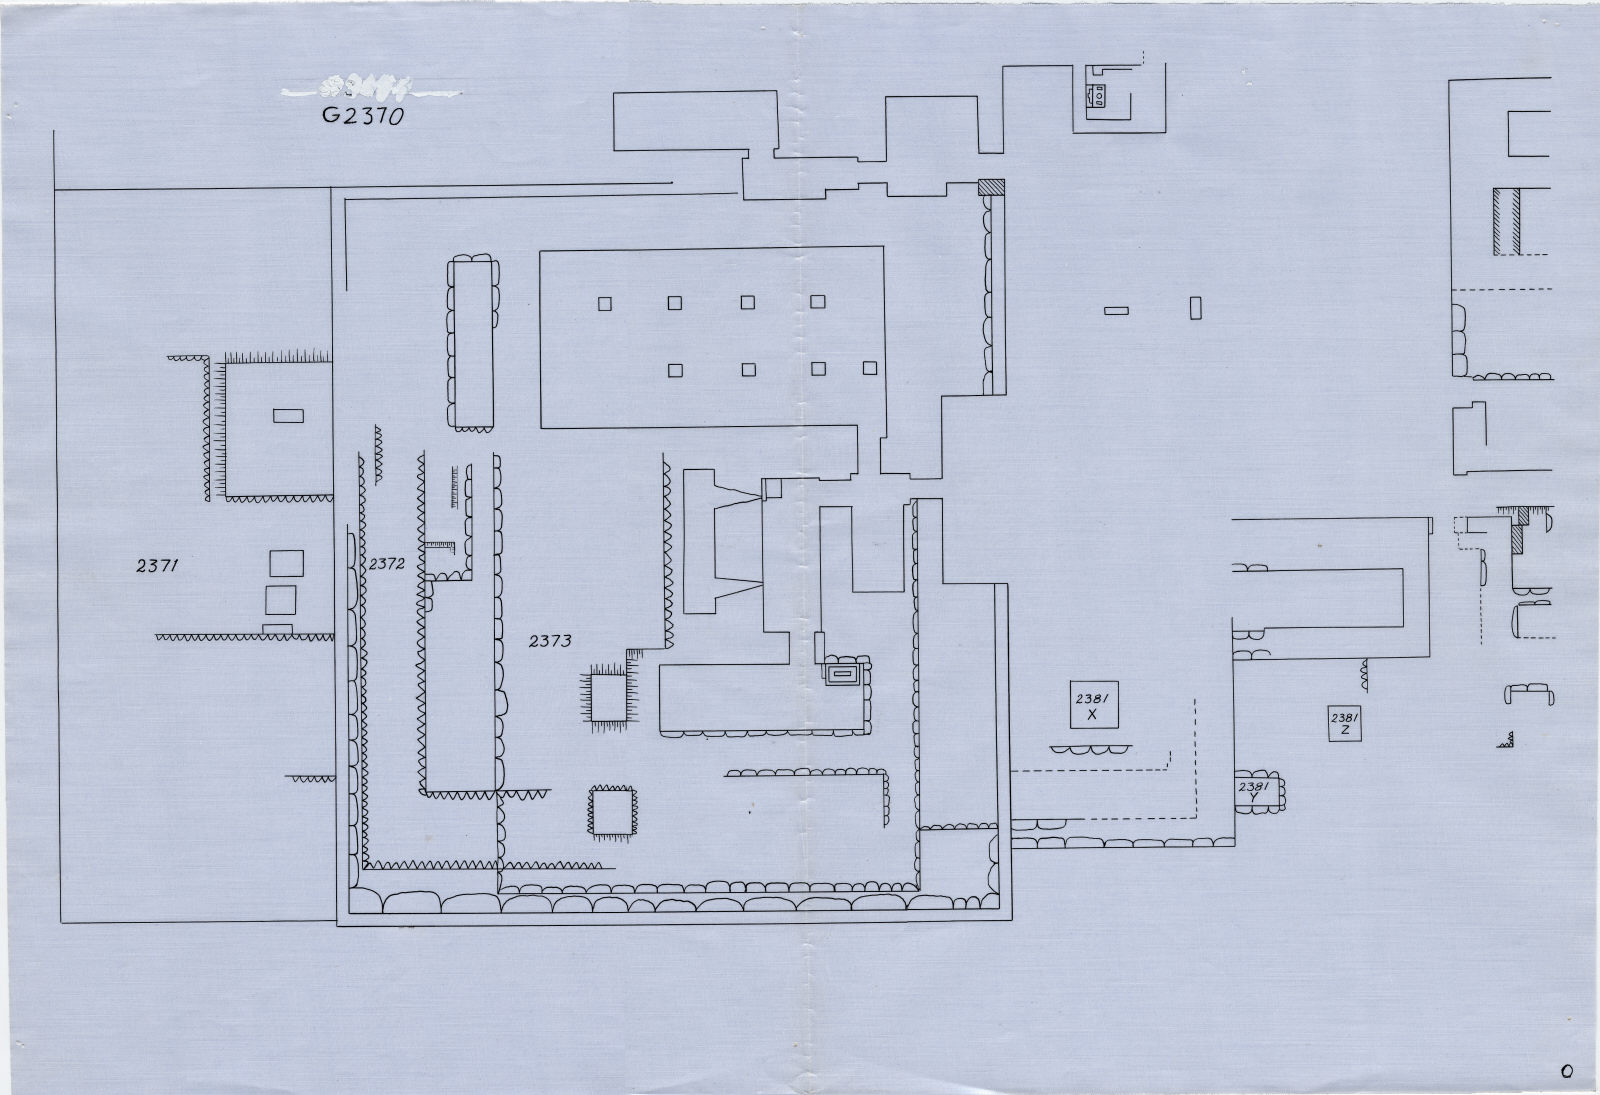 Maps and plans: Plan of G 2370, G 2371, G 2372, G 2373, G 2381